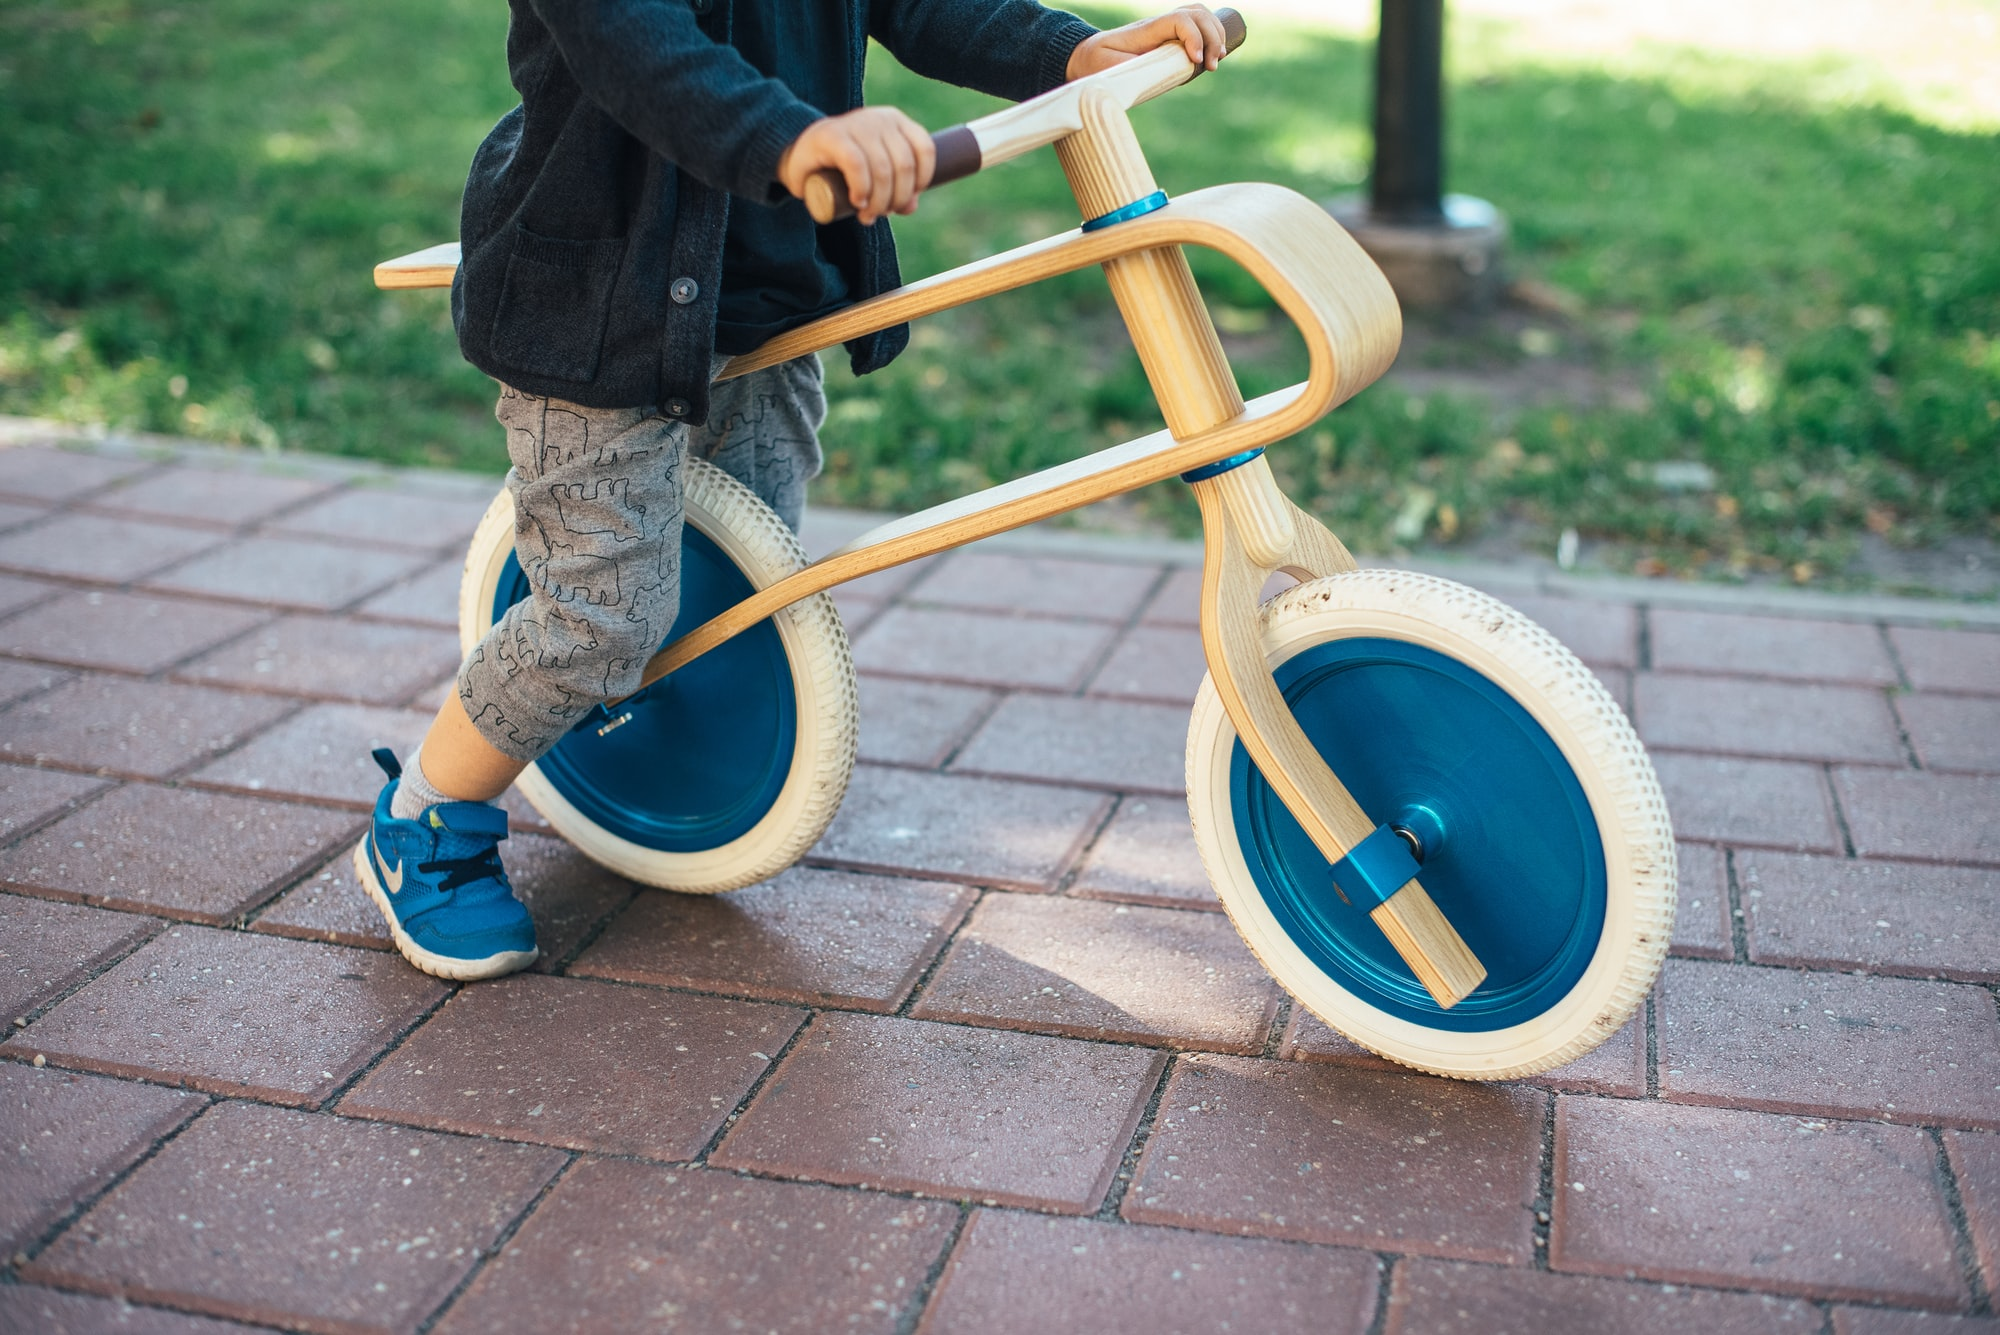 The Top 15 Best Riding Toys For 1-Year-Olds